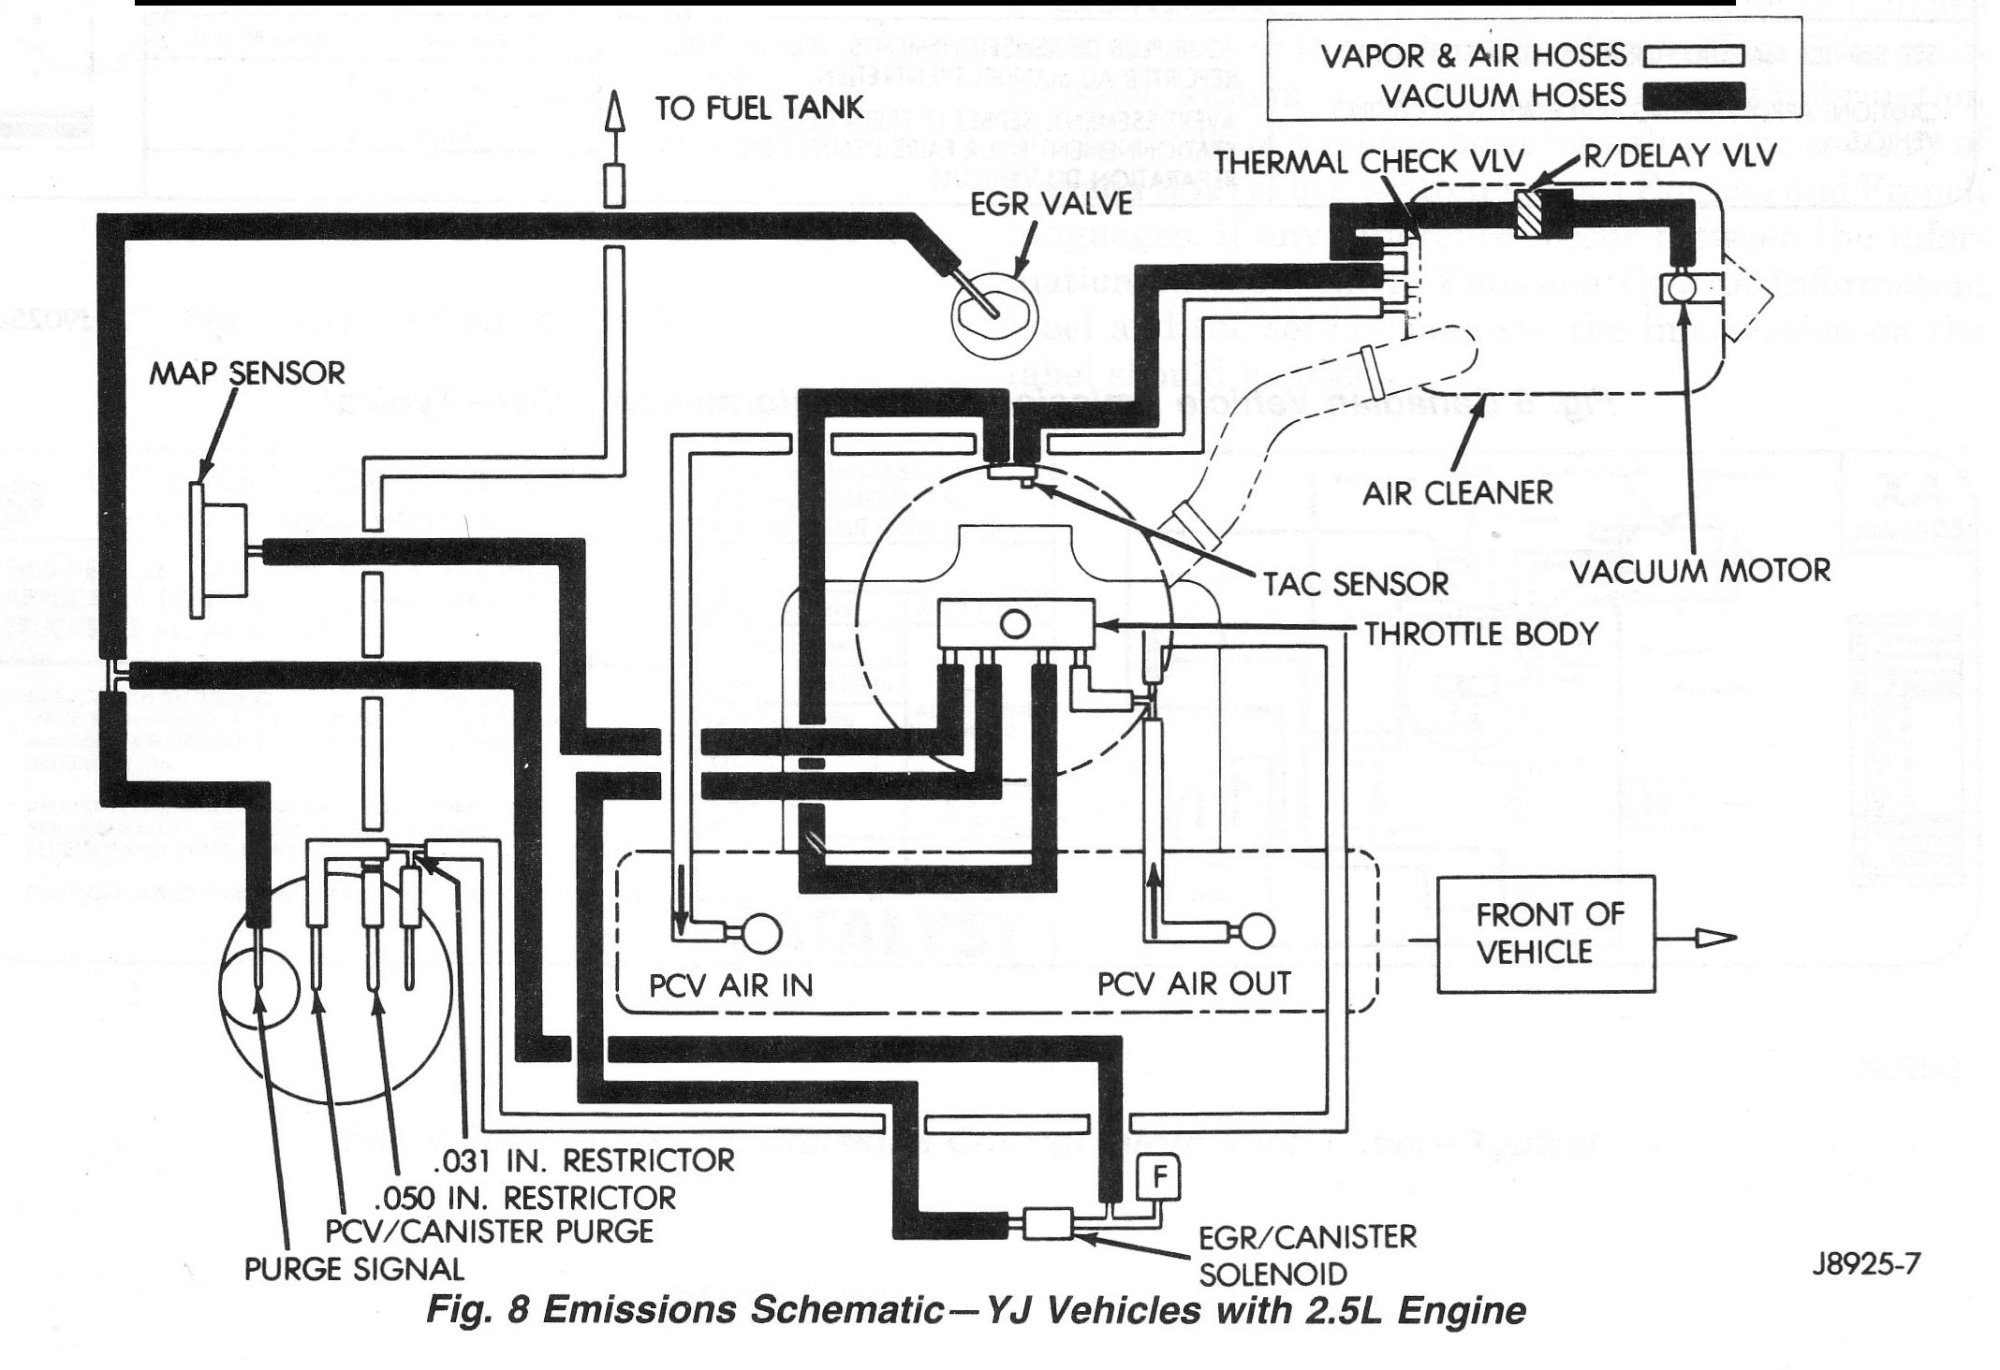 hight resolution of 90 jeep yj vacuum diagram wiring schematic wiring diagram blog jeep 4 2 engine vacuum diagram